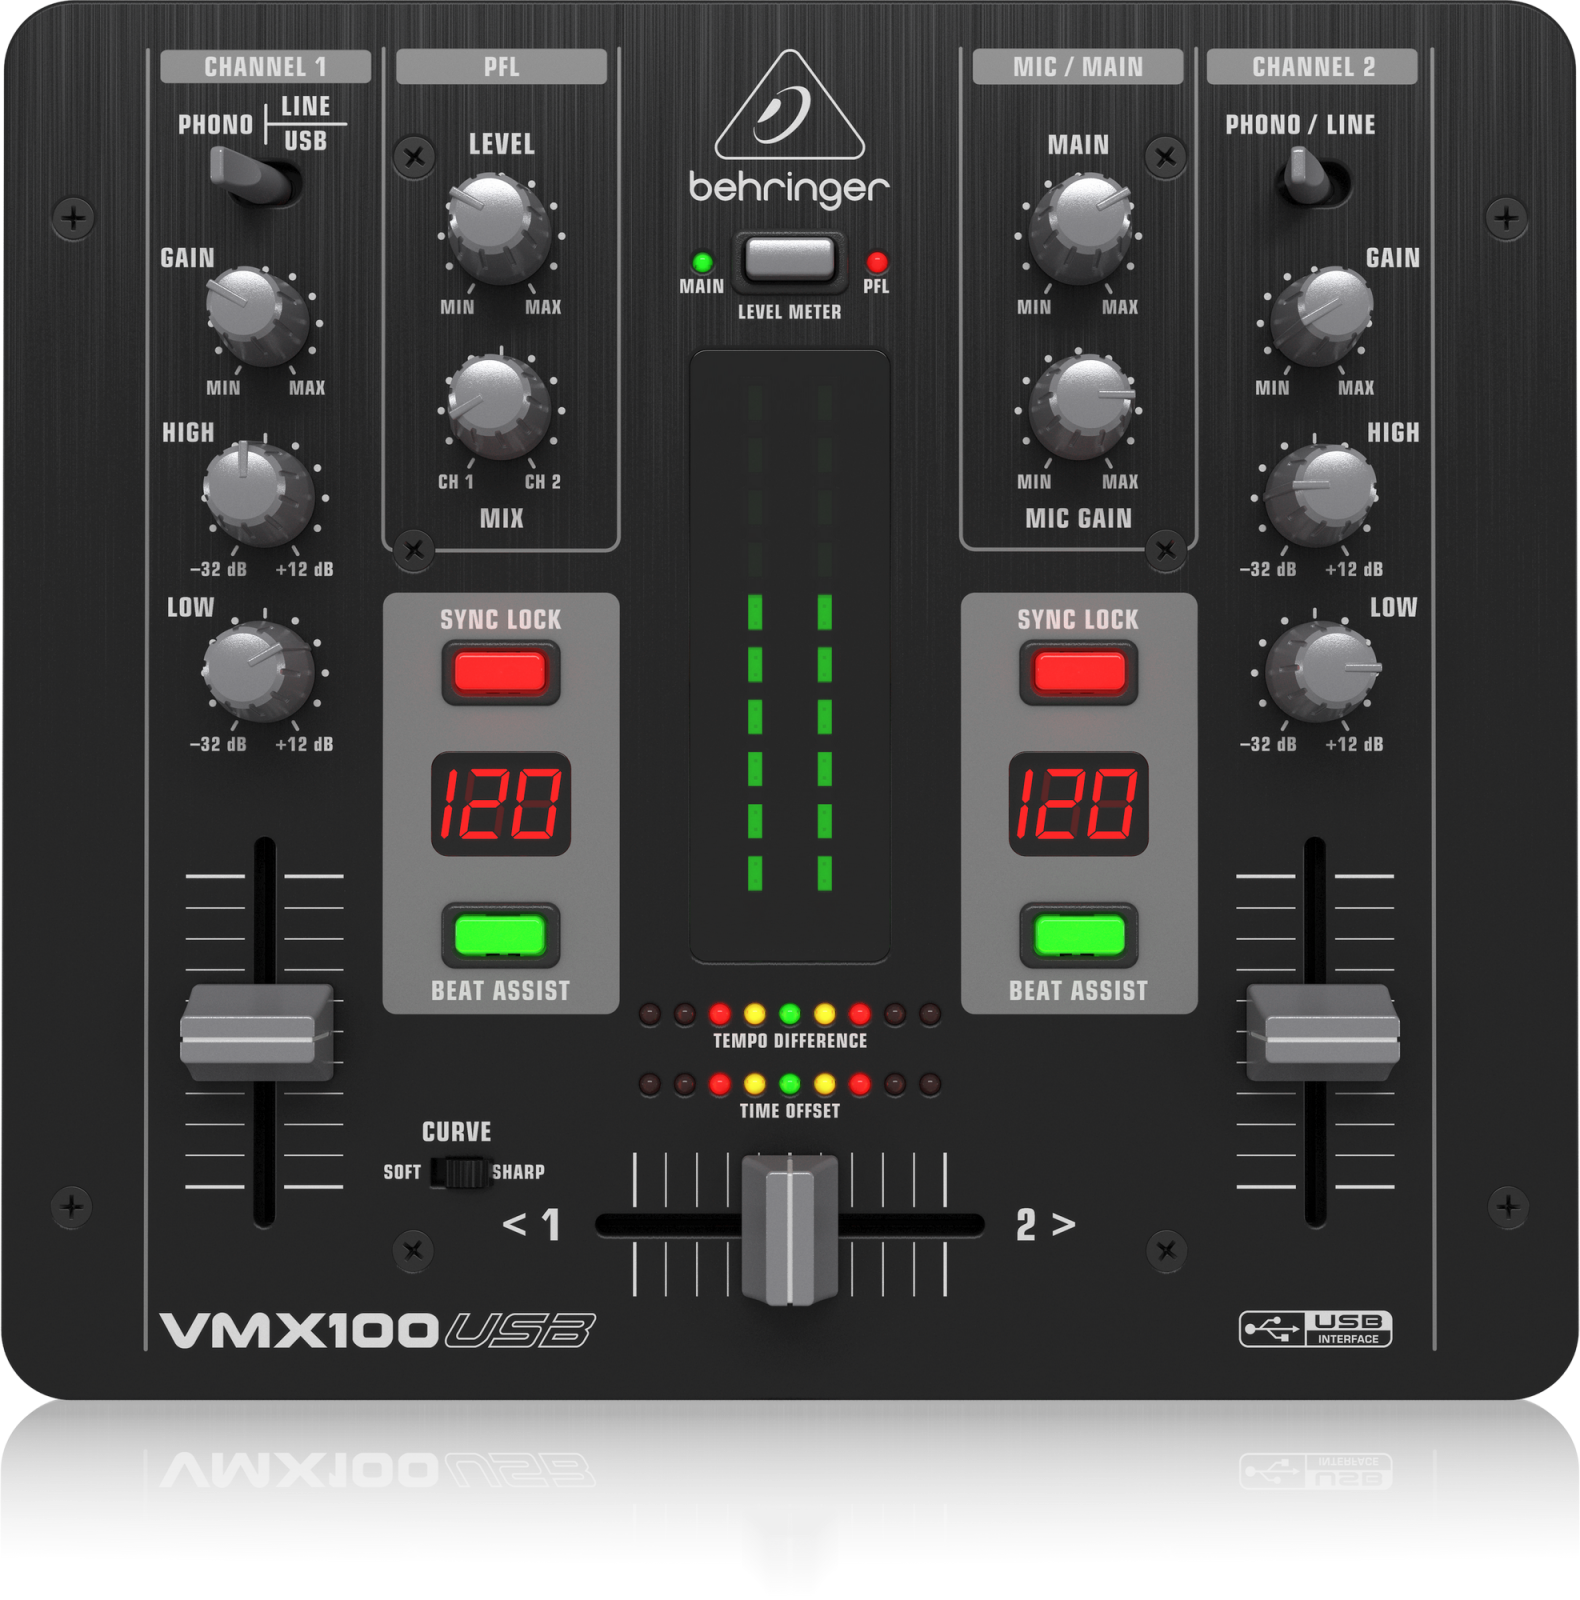 BEHRINGER VMX100USB PROFESSIONAL 2-CHANNEL DJ MIXER W/USB/AUDIO INTERFACE, BPM COUNTER, VCA CONTROL & MASSIVE SOFTWARE BUNDLE